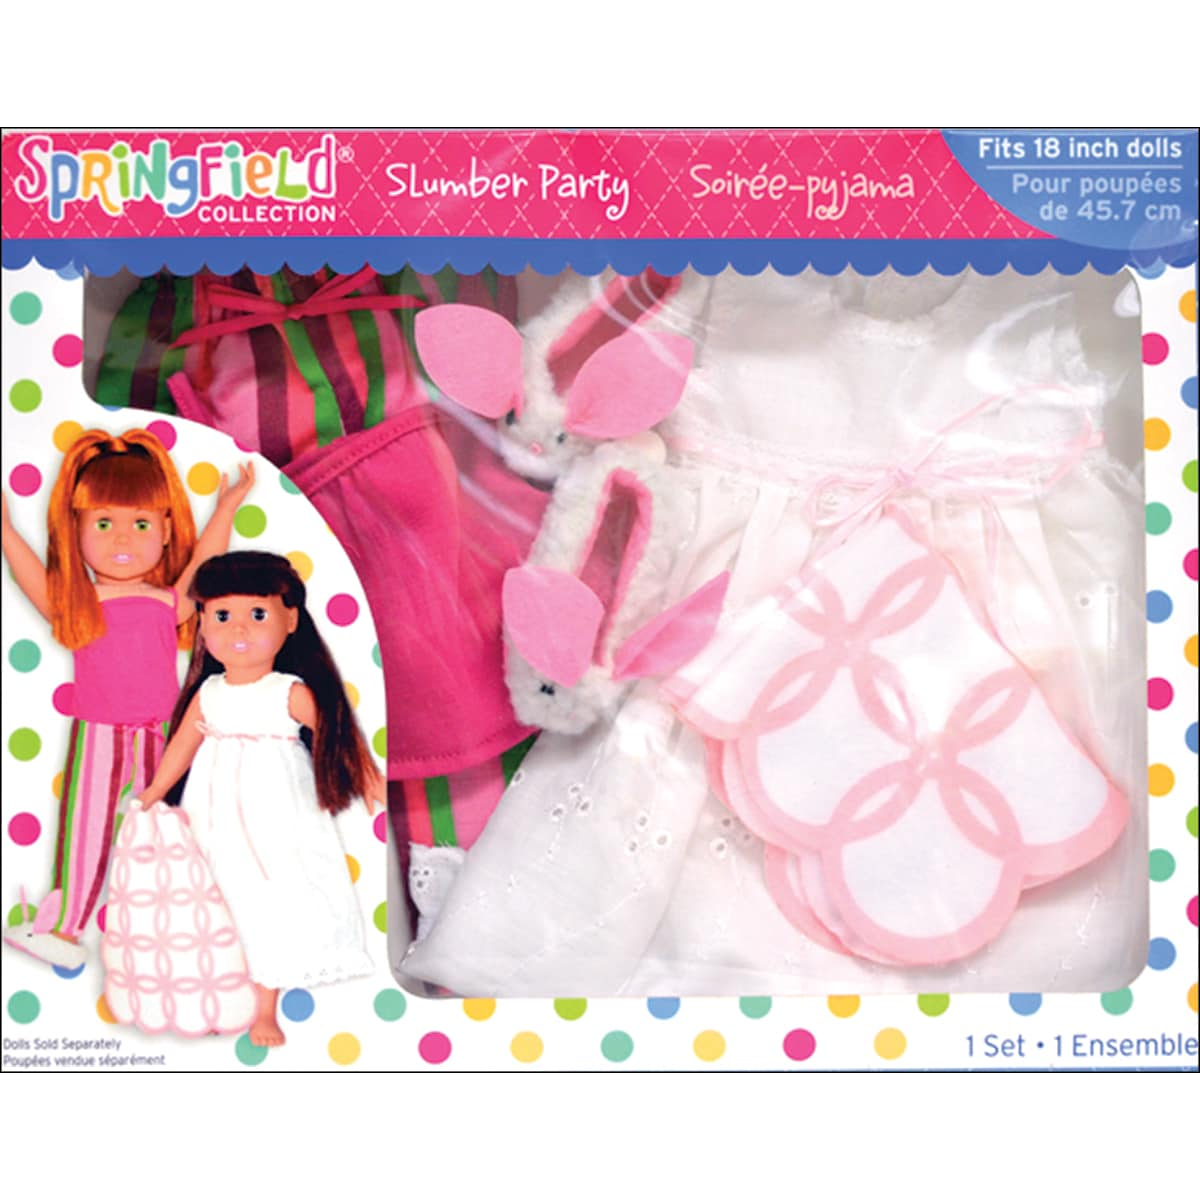 Springfield Collection Slumber Party Set